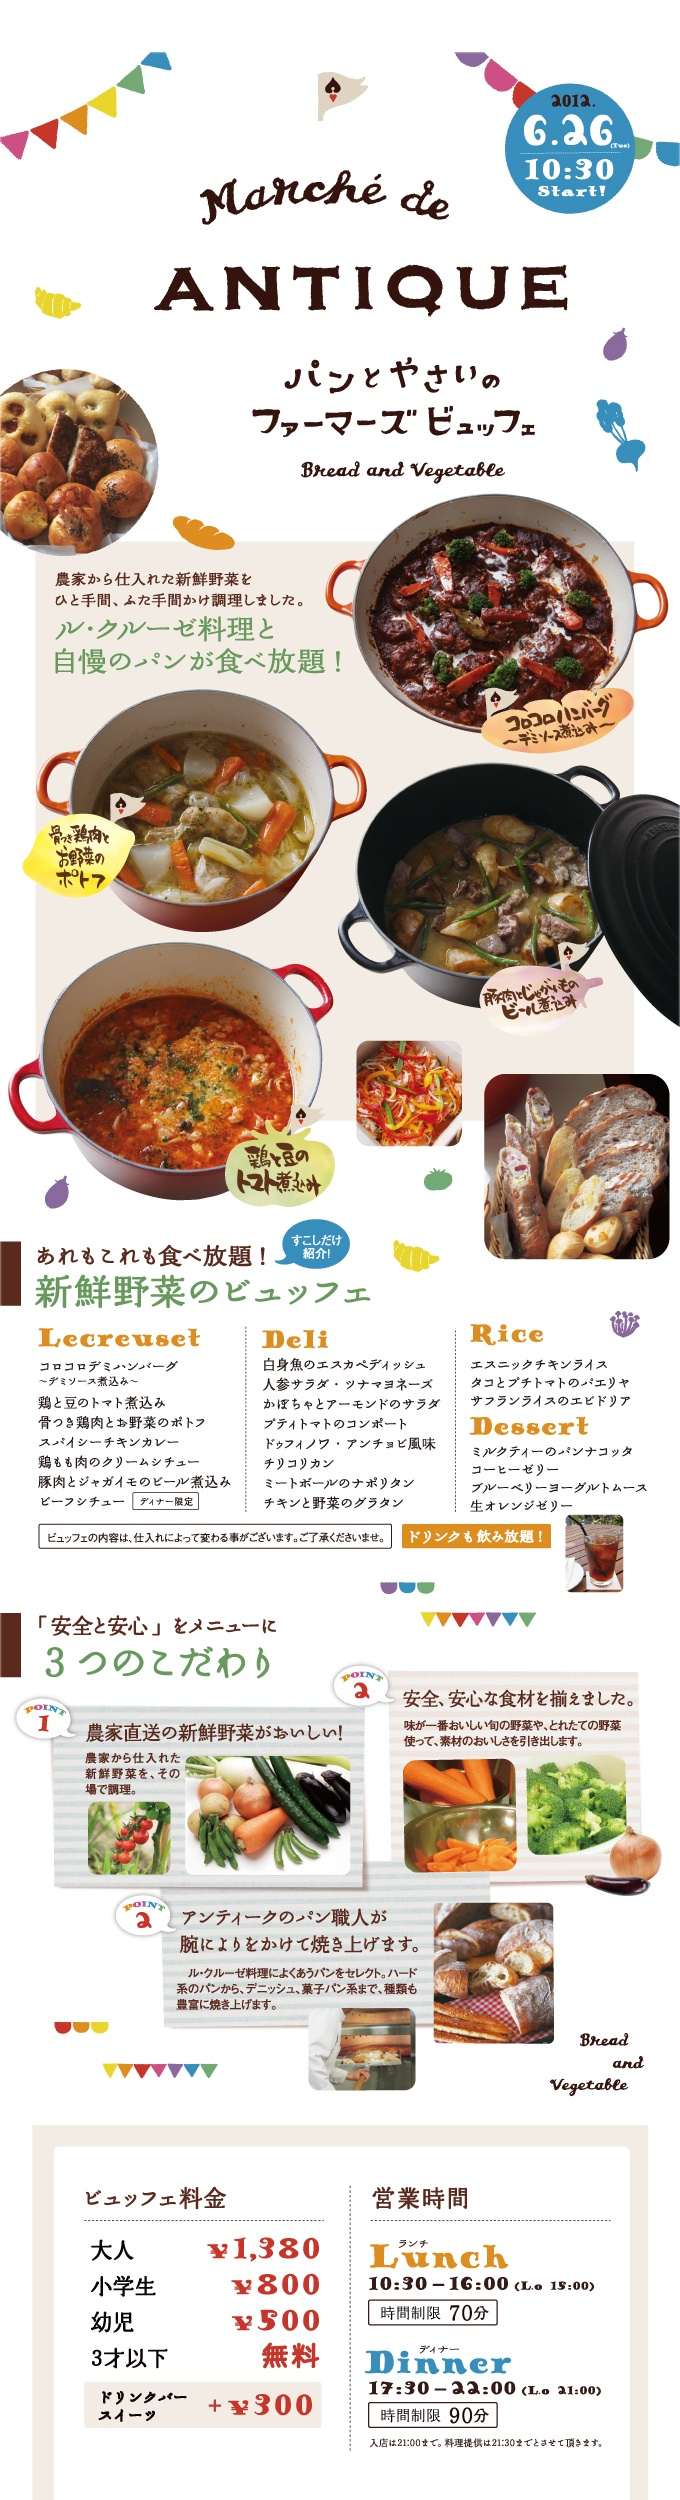 Marche de ANTIQUE 食べ物 /